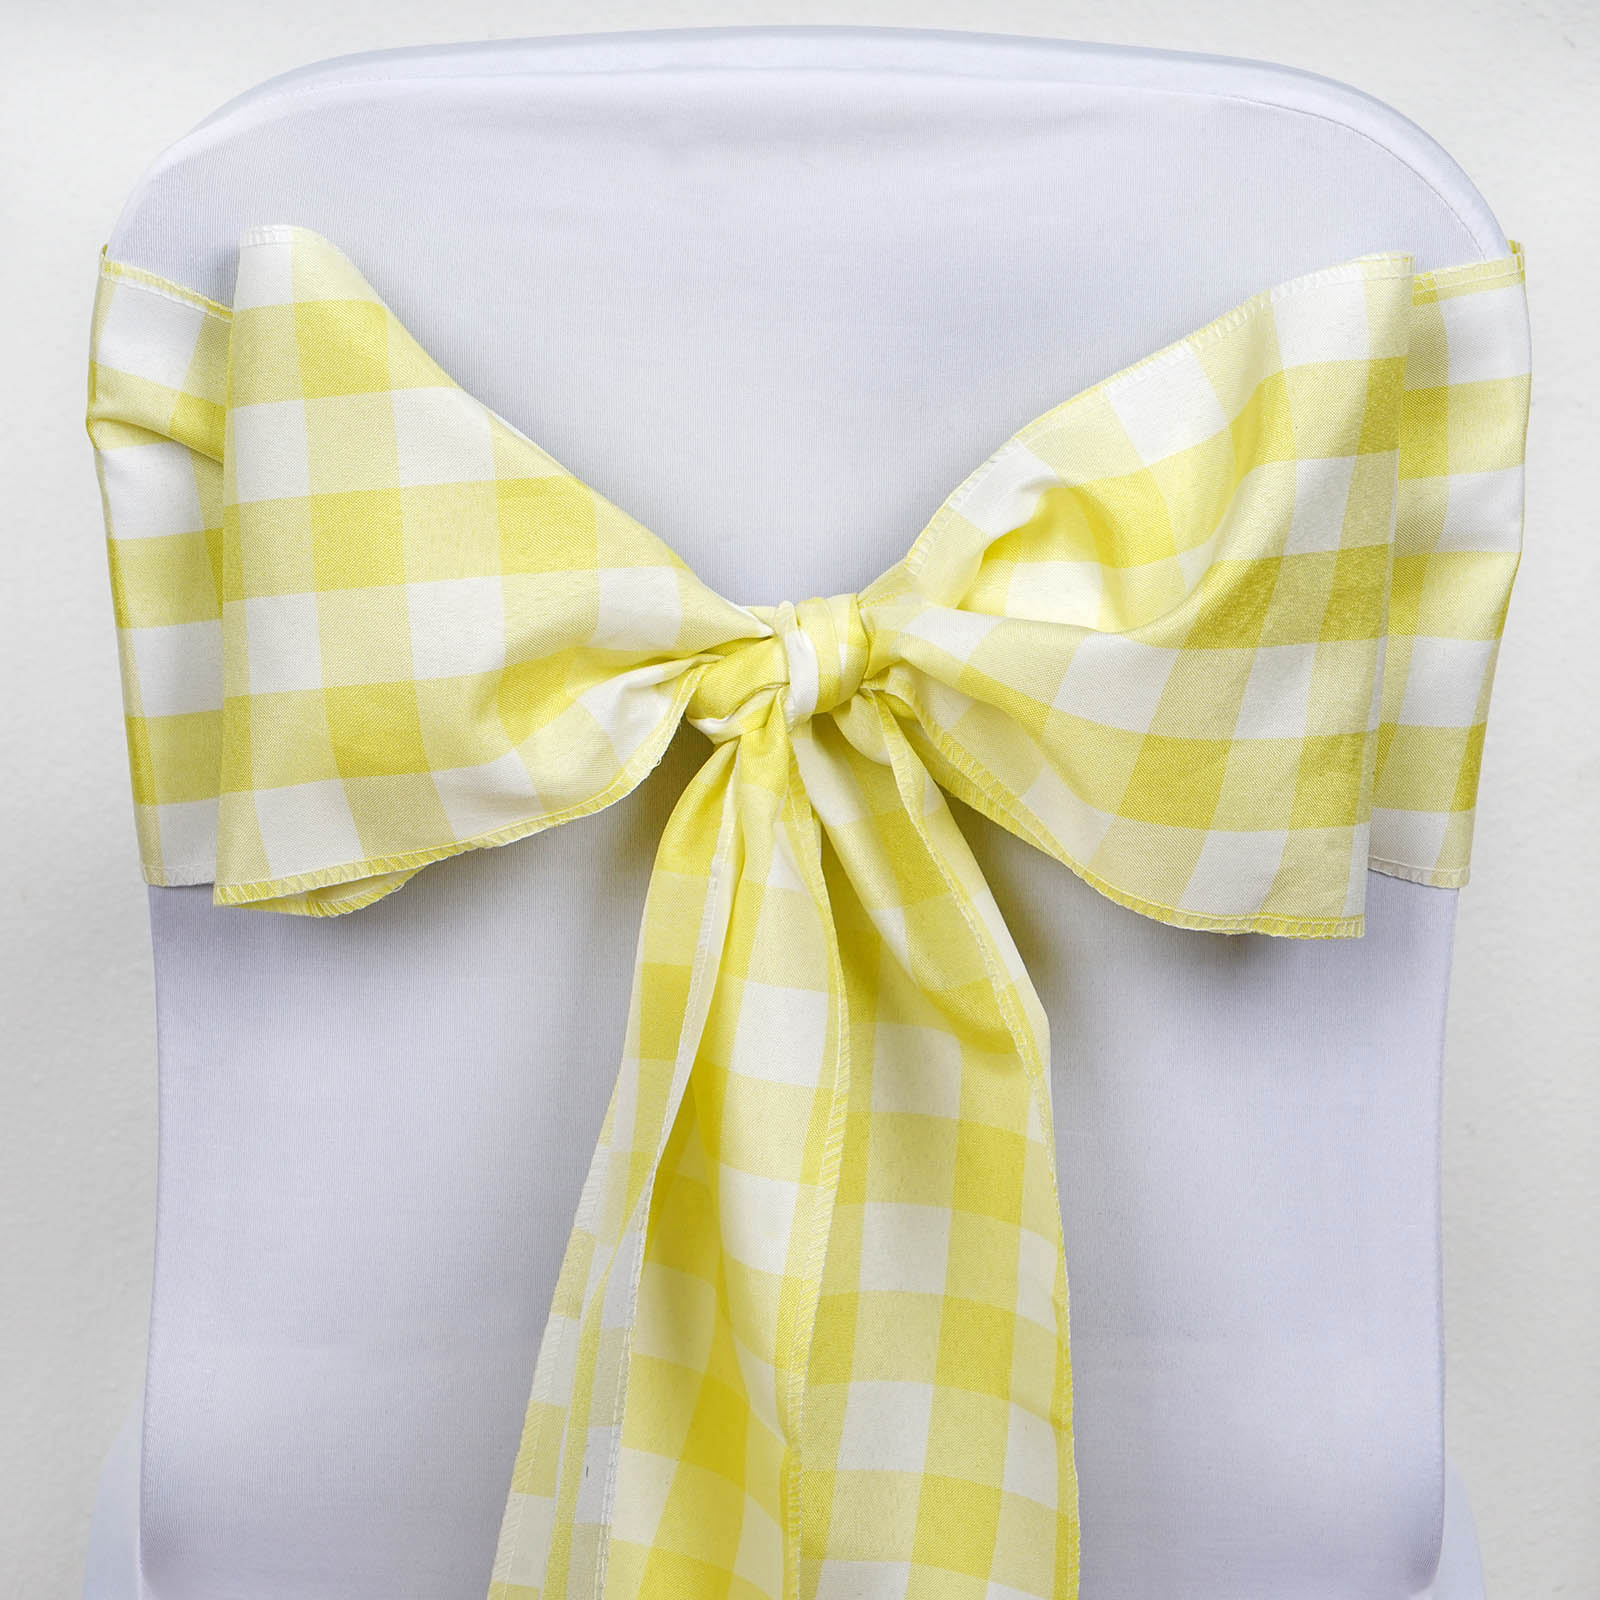 BalsaCircle 5 Gingham Checkered Polyester Chair Sashes Bows Ties - Wedding Party Ceremony Reception Event Decorations Supplies